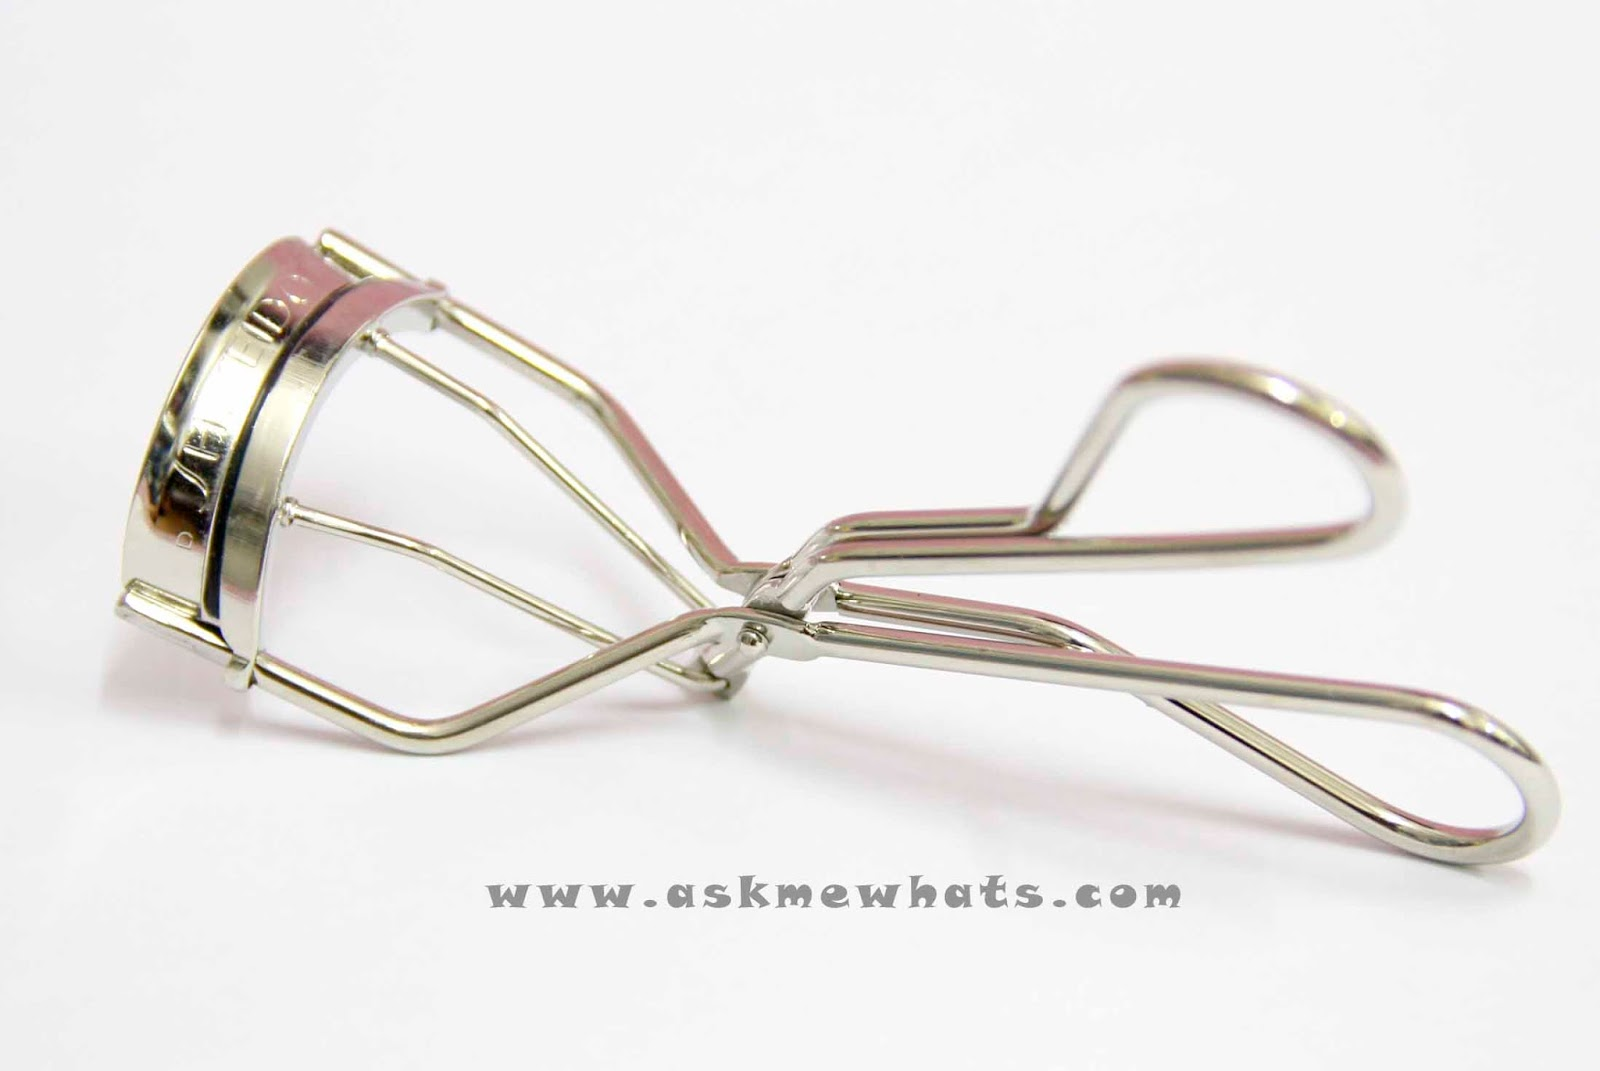 shu uemura eyelash curler vs shiseido. the rubber fits perfectly on metal curler with none of those space - thus, no lash pulling! if you purchase a shiseido eyelash curler, you\u0027ll get free shu uemura vs .